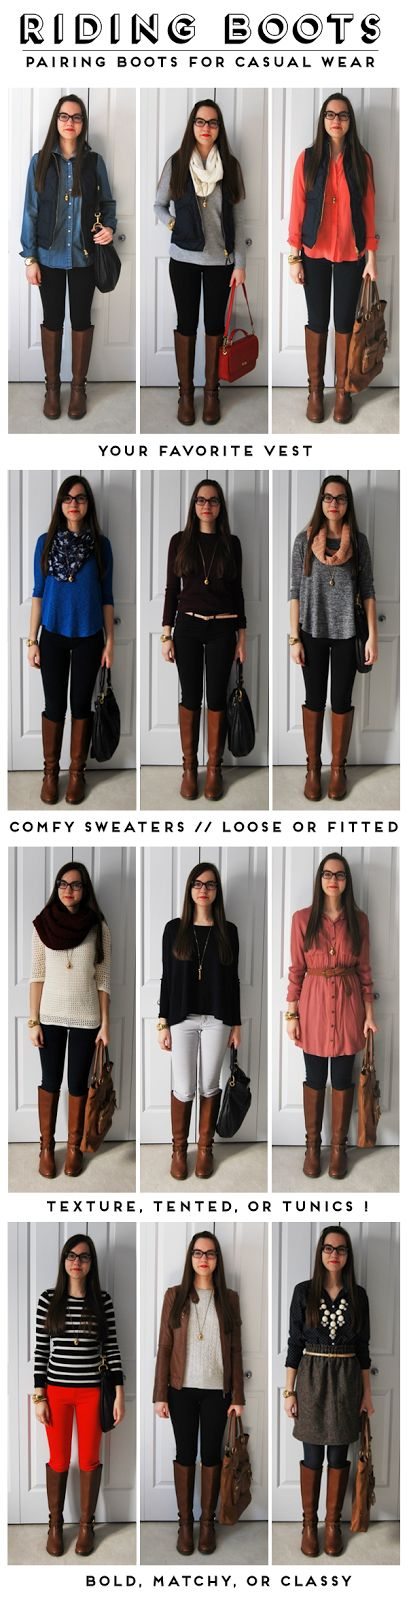 12 ways to wear knee high equestrian boots -  Fall outfits #Outfits #ClosetRemix